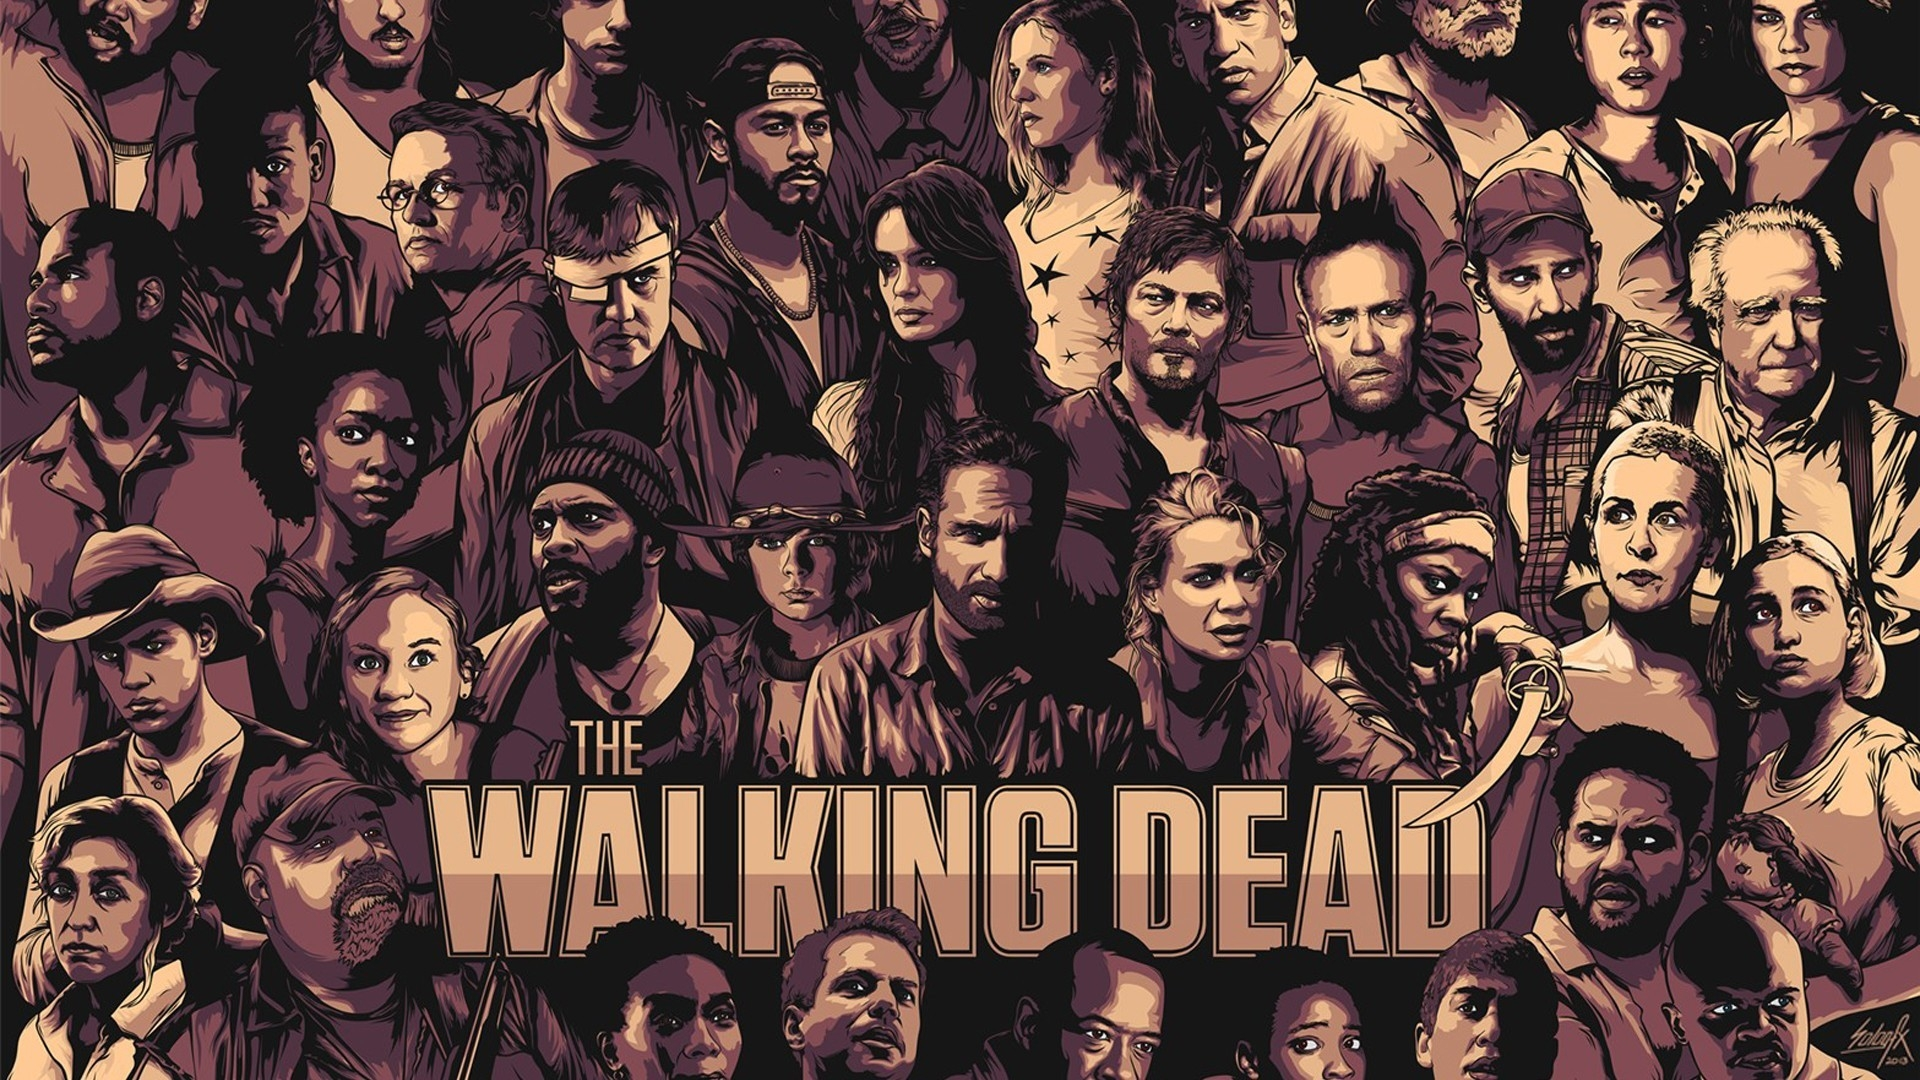 The Walking Dead Cool Poster for 1920 x 1080 HDTV 1080p resolution